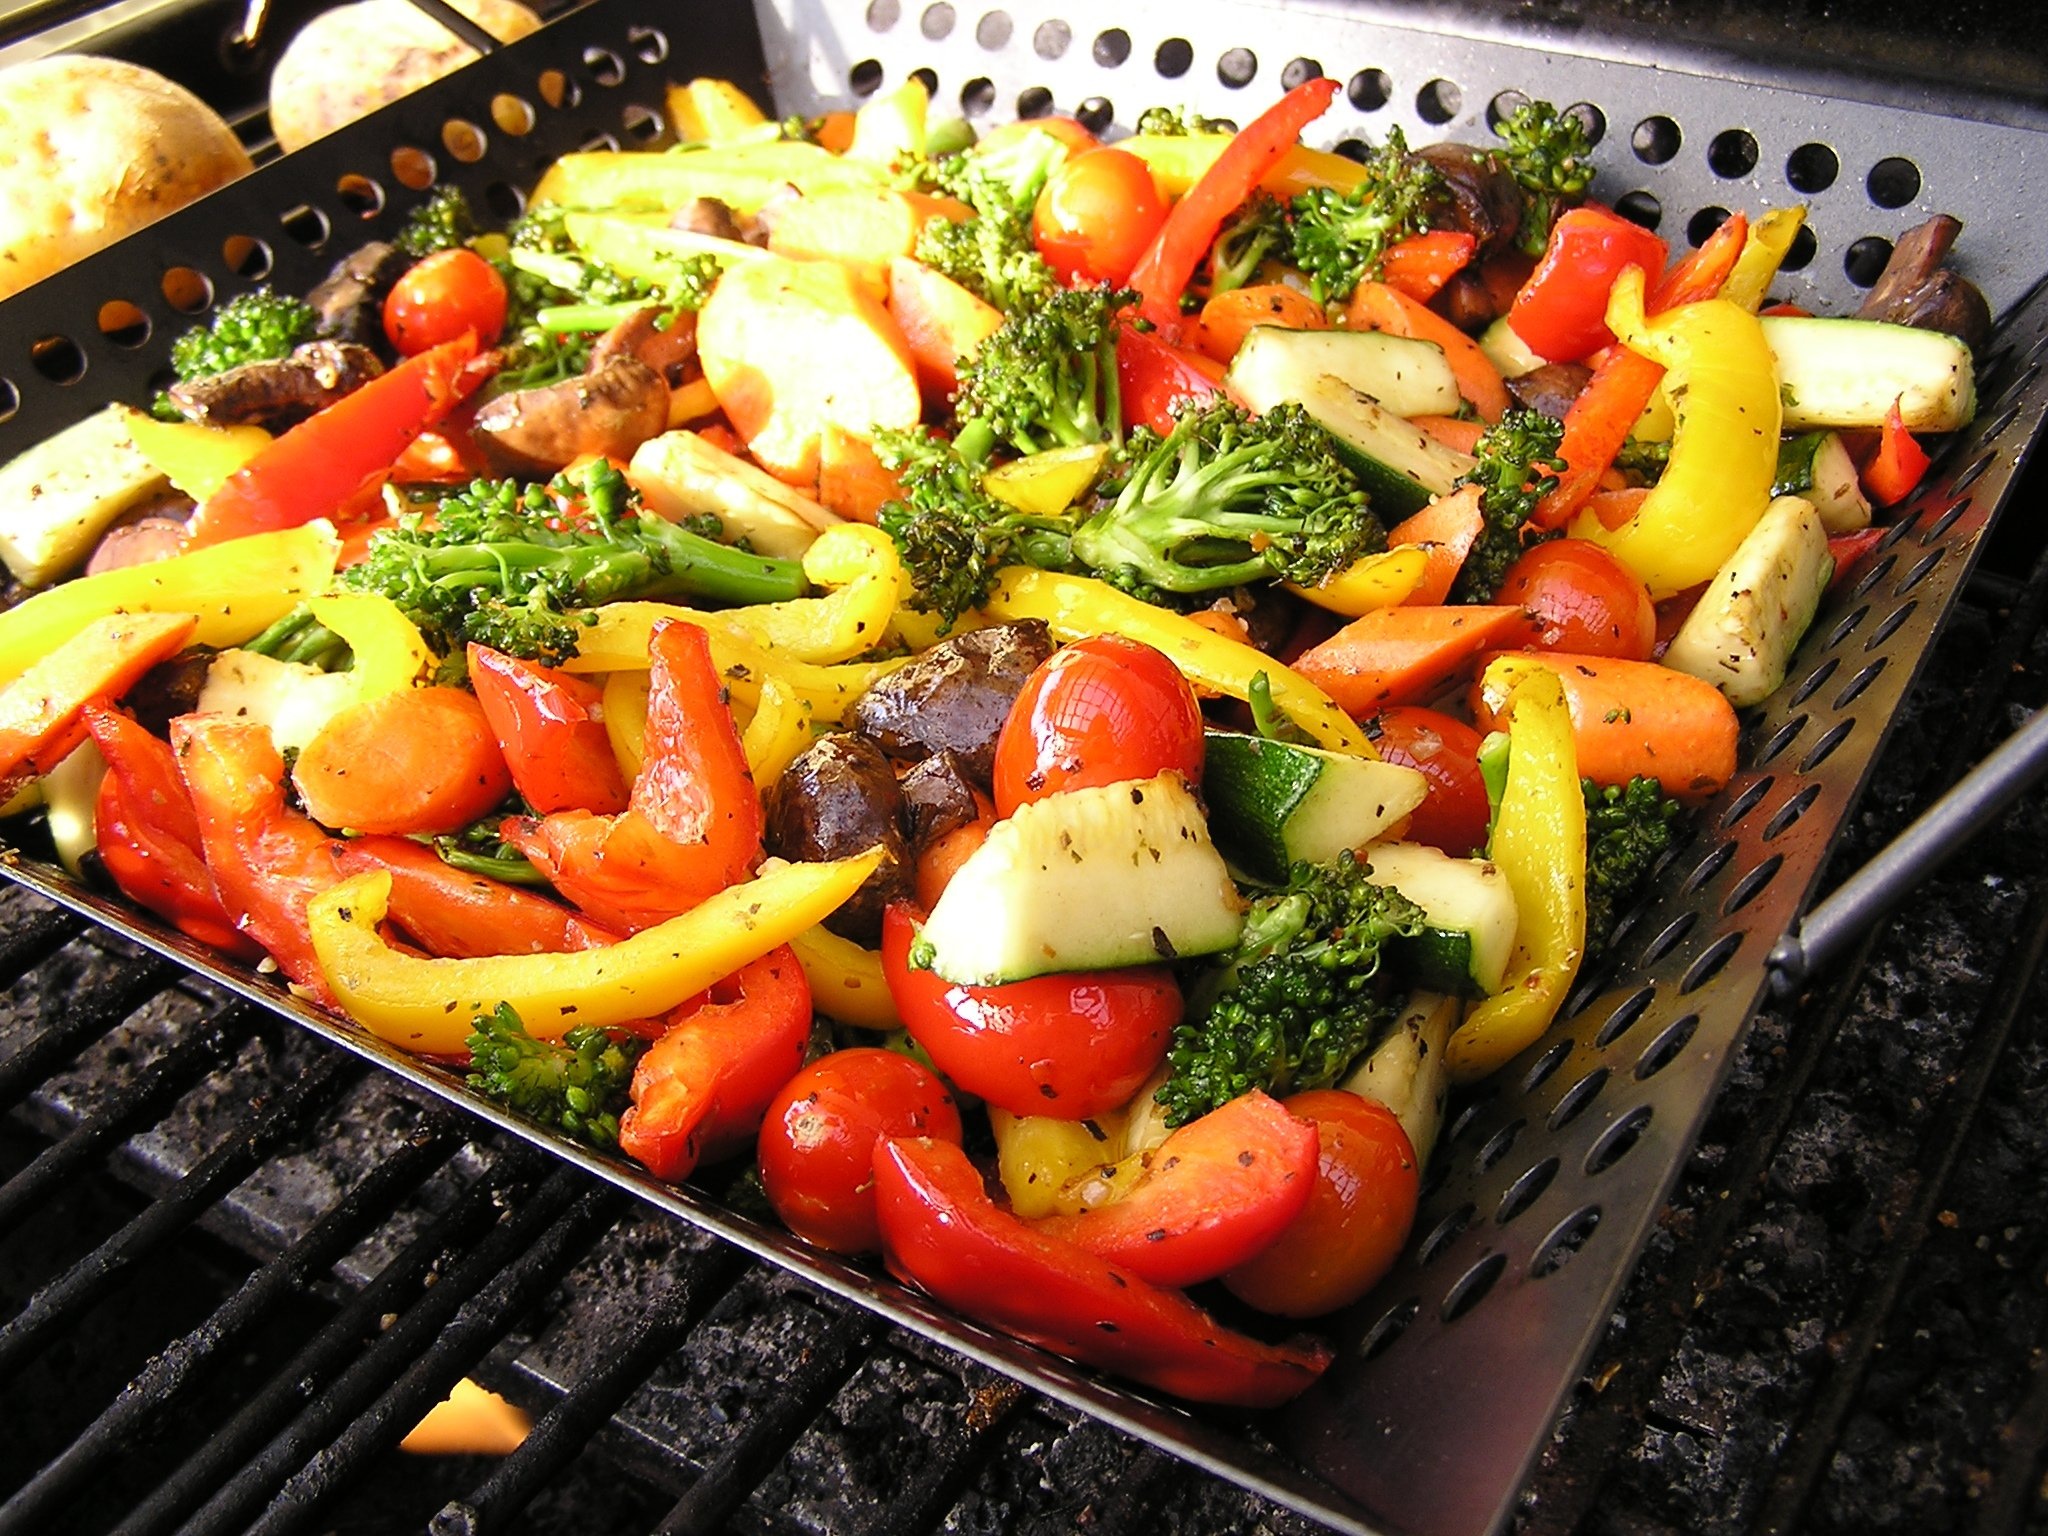 A medley of vegetables roasting on a barbeque